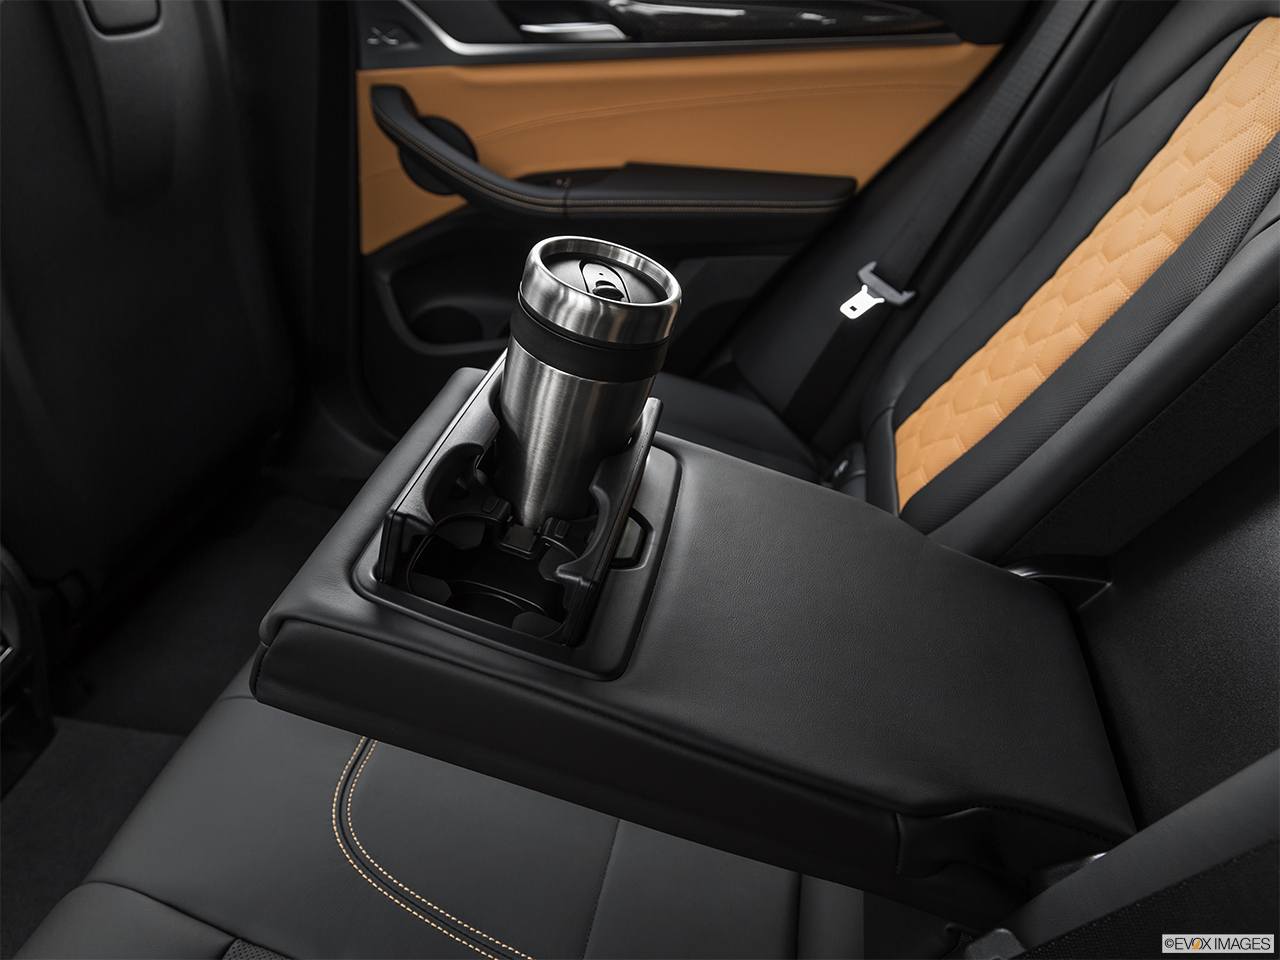 2020 BMW X3 M Competition Cup holder prop (quaternary).